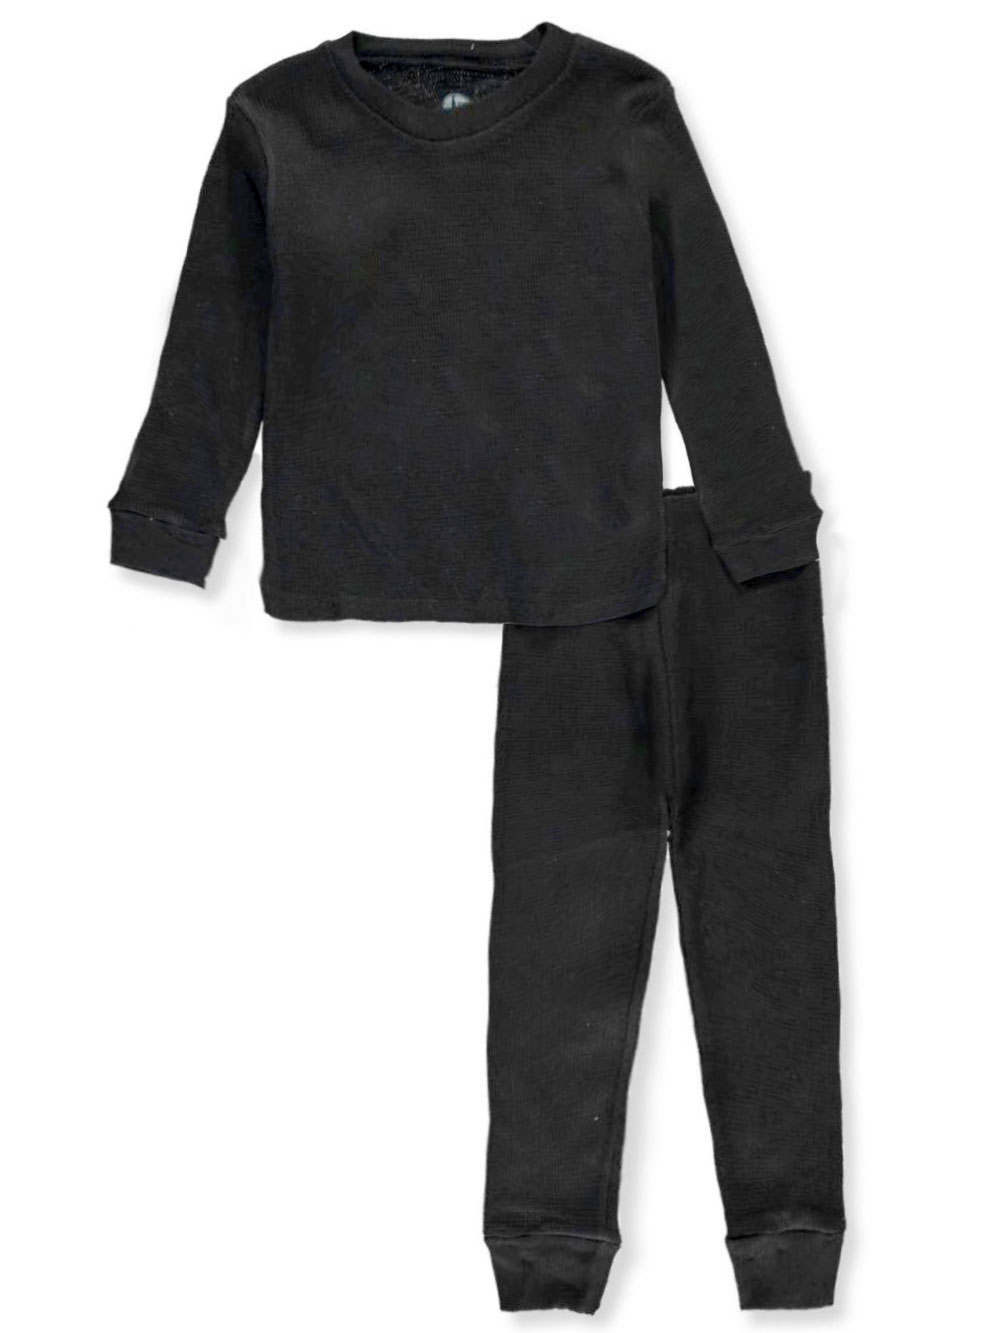 Unisex 2-Piece Thermal Long Underwear Set